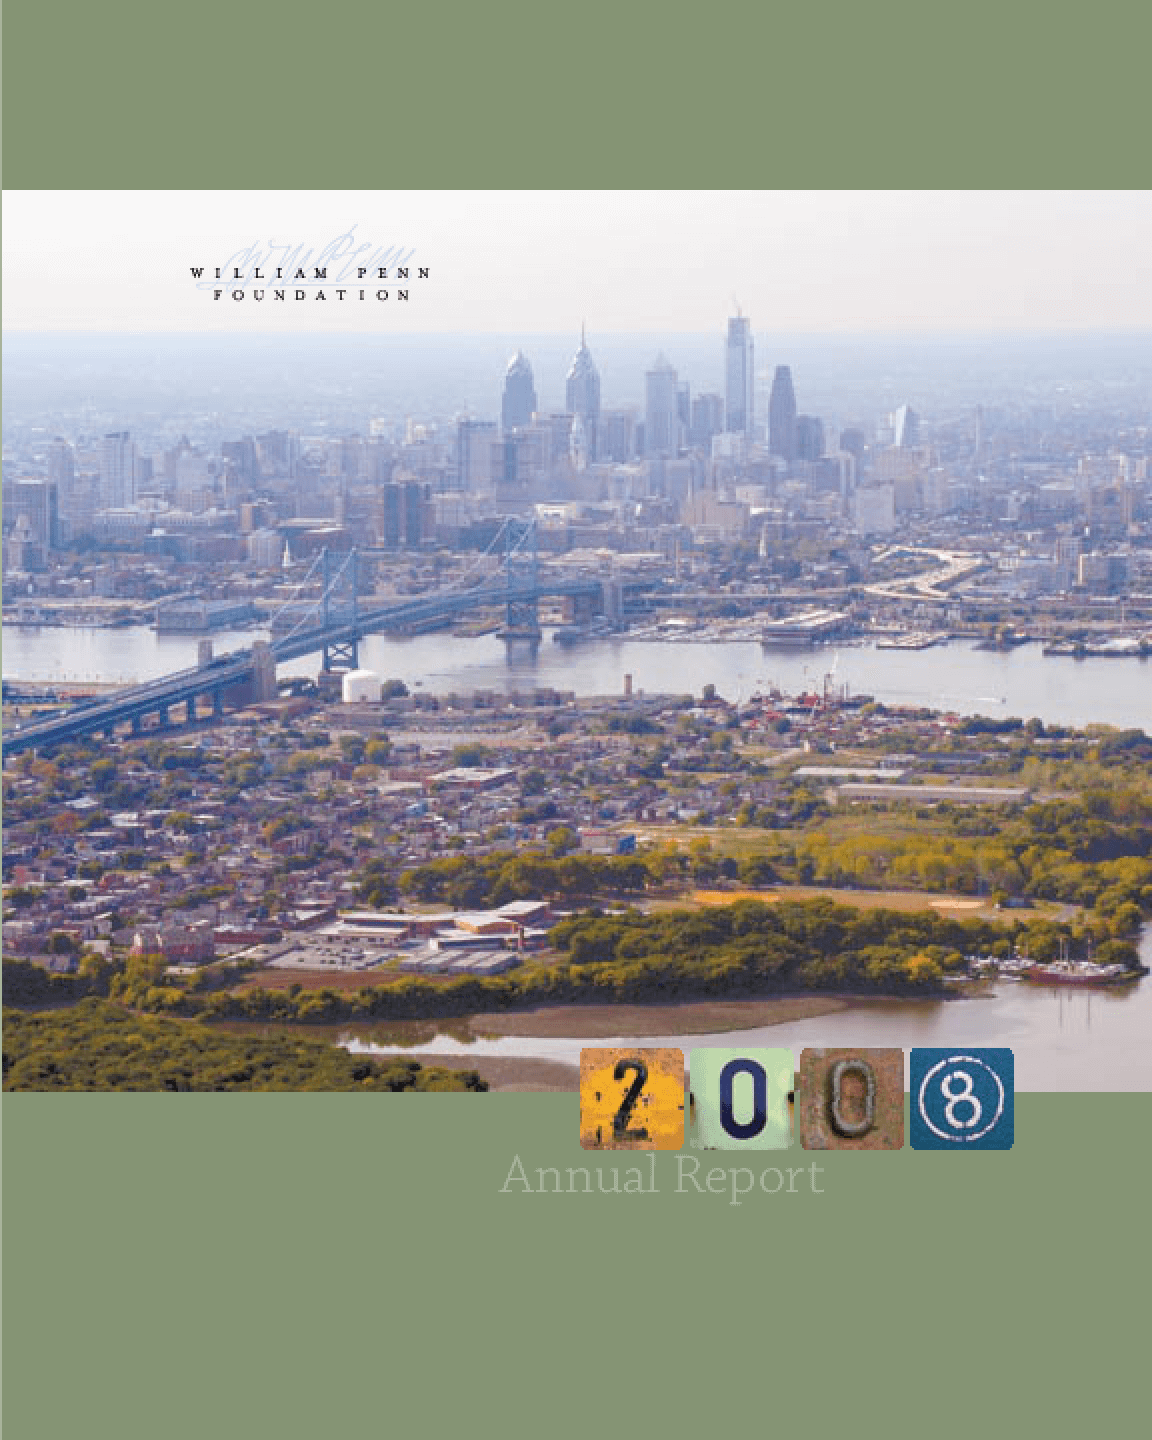 William Penn Foundation - 2008 Annual Report